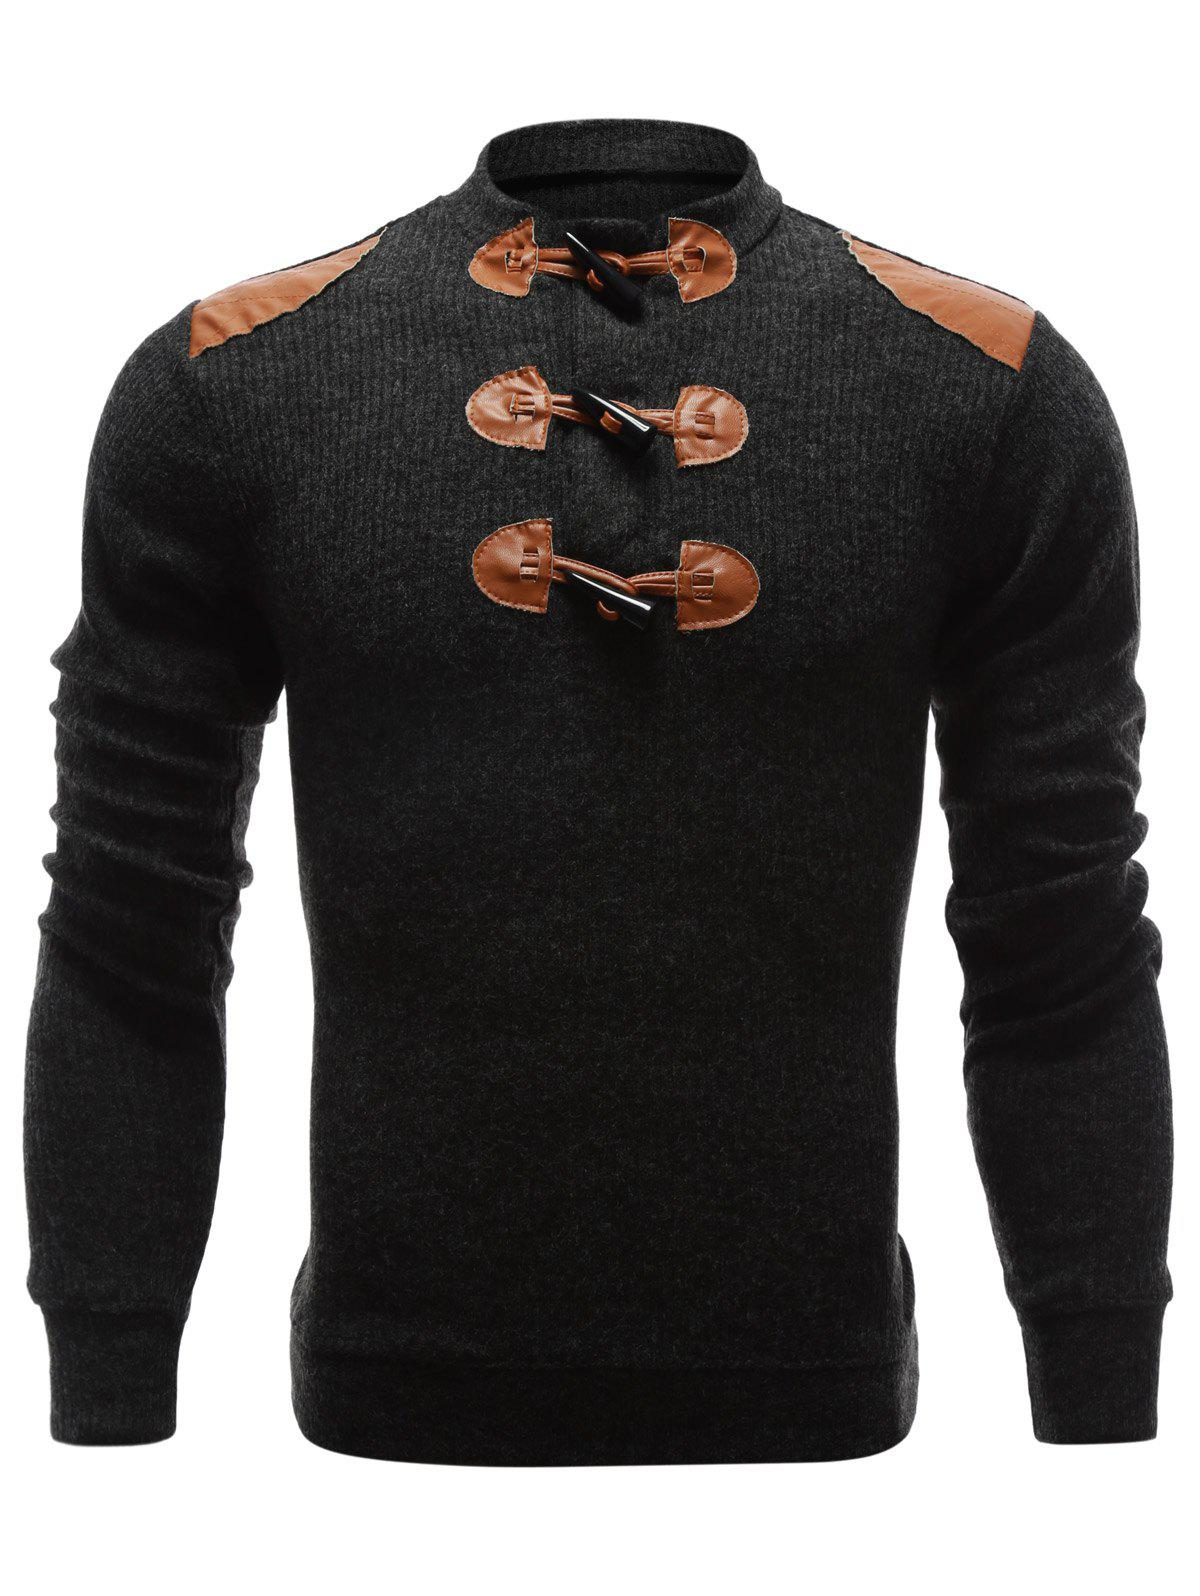 Ribbed Shoulder Patch Claw Button Sweater 192401909